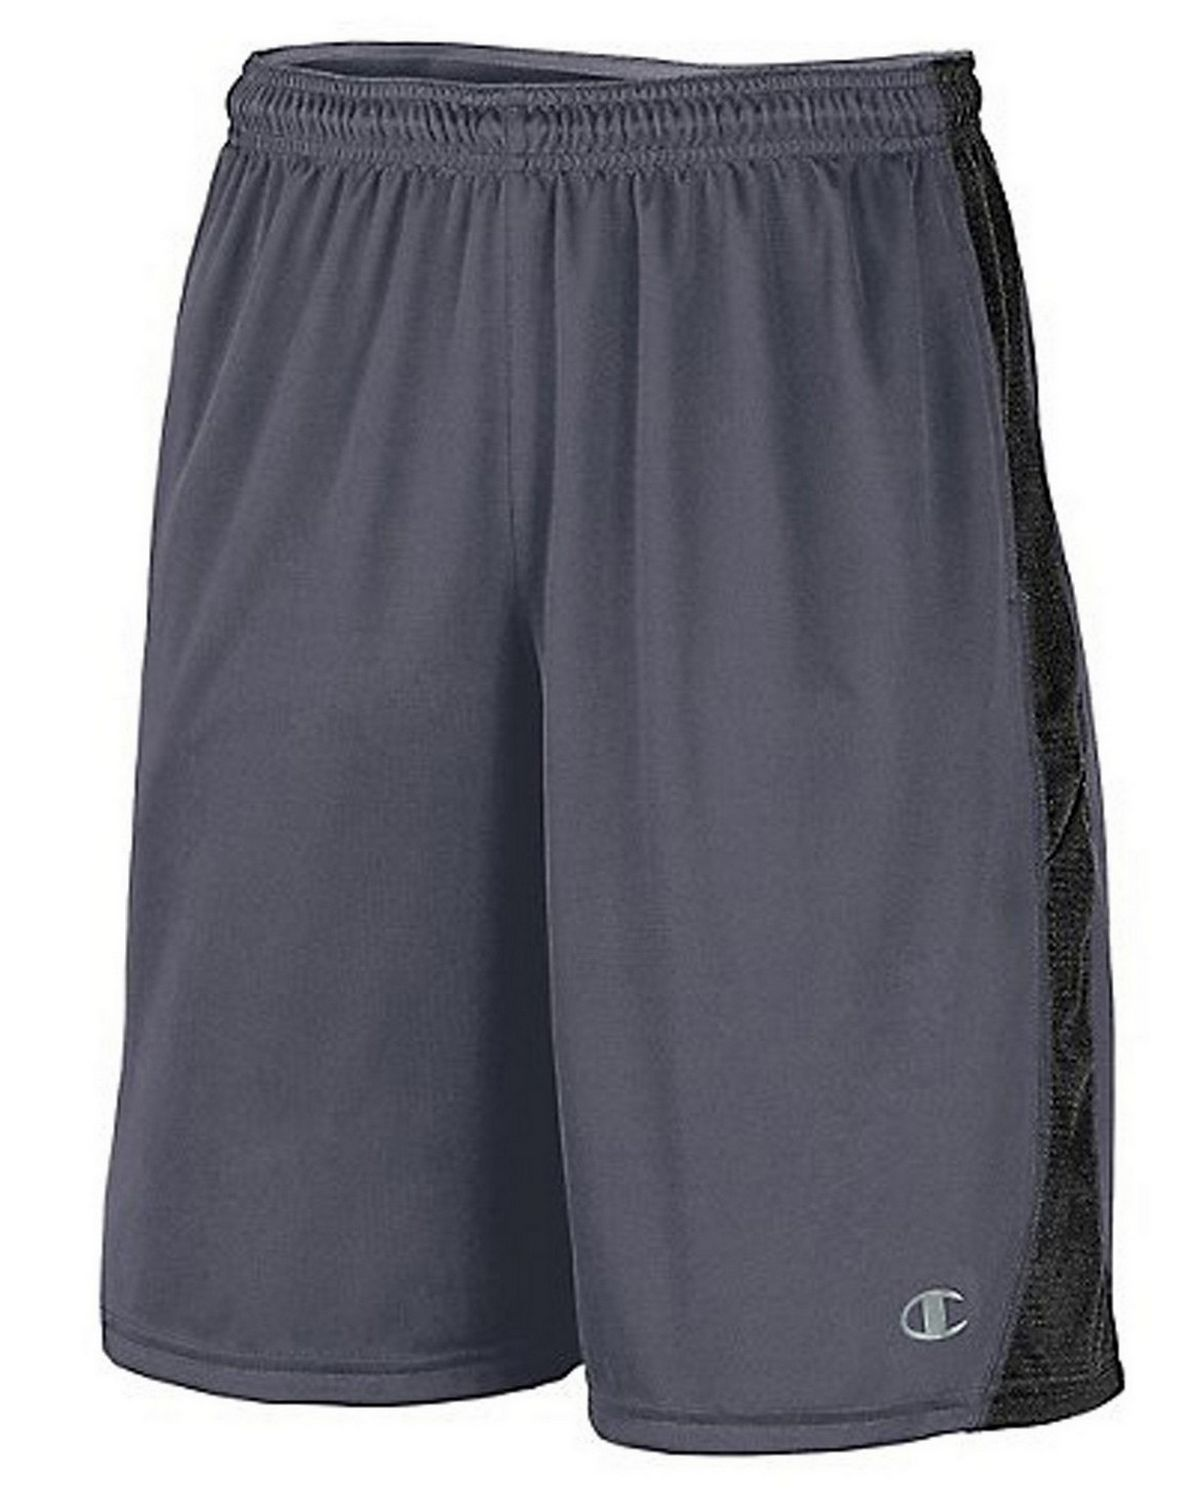 Champion 86703 Vapor PowerTrain Knit Shorts - Slate Grey/Black - S 86703